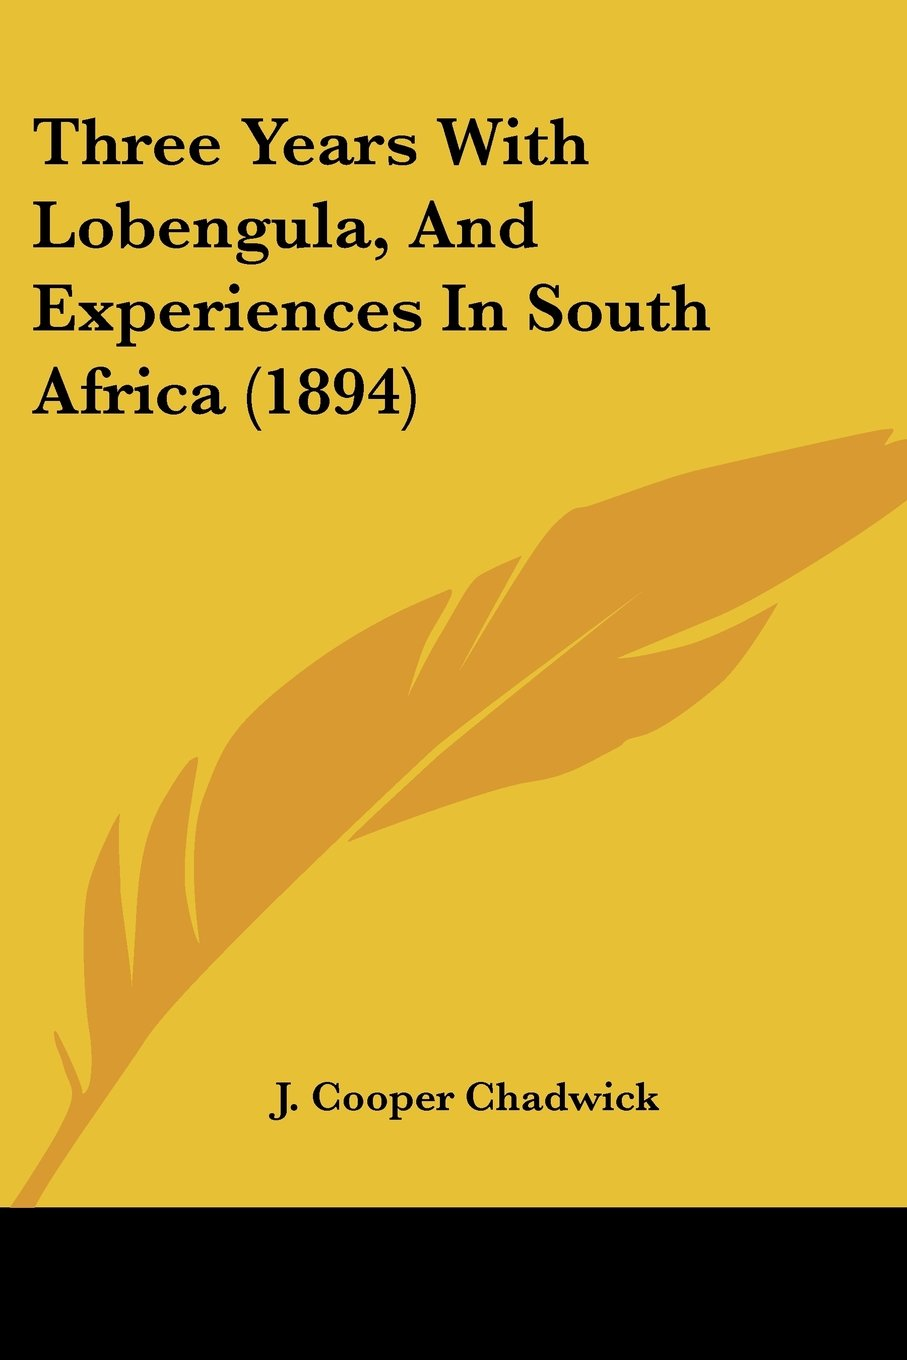 Download Three Years With Lobengula, And Experiences In South Africa (1894) ebook